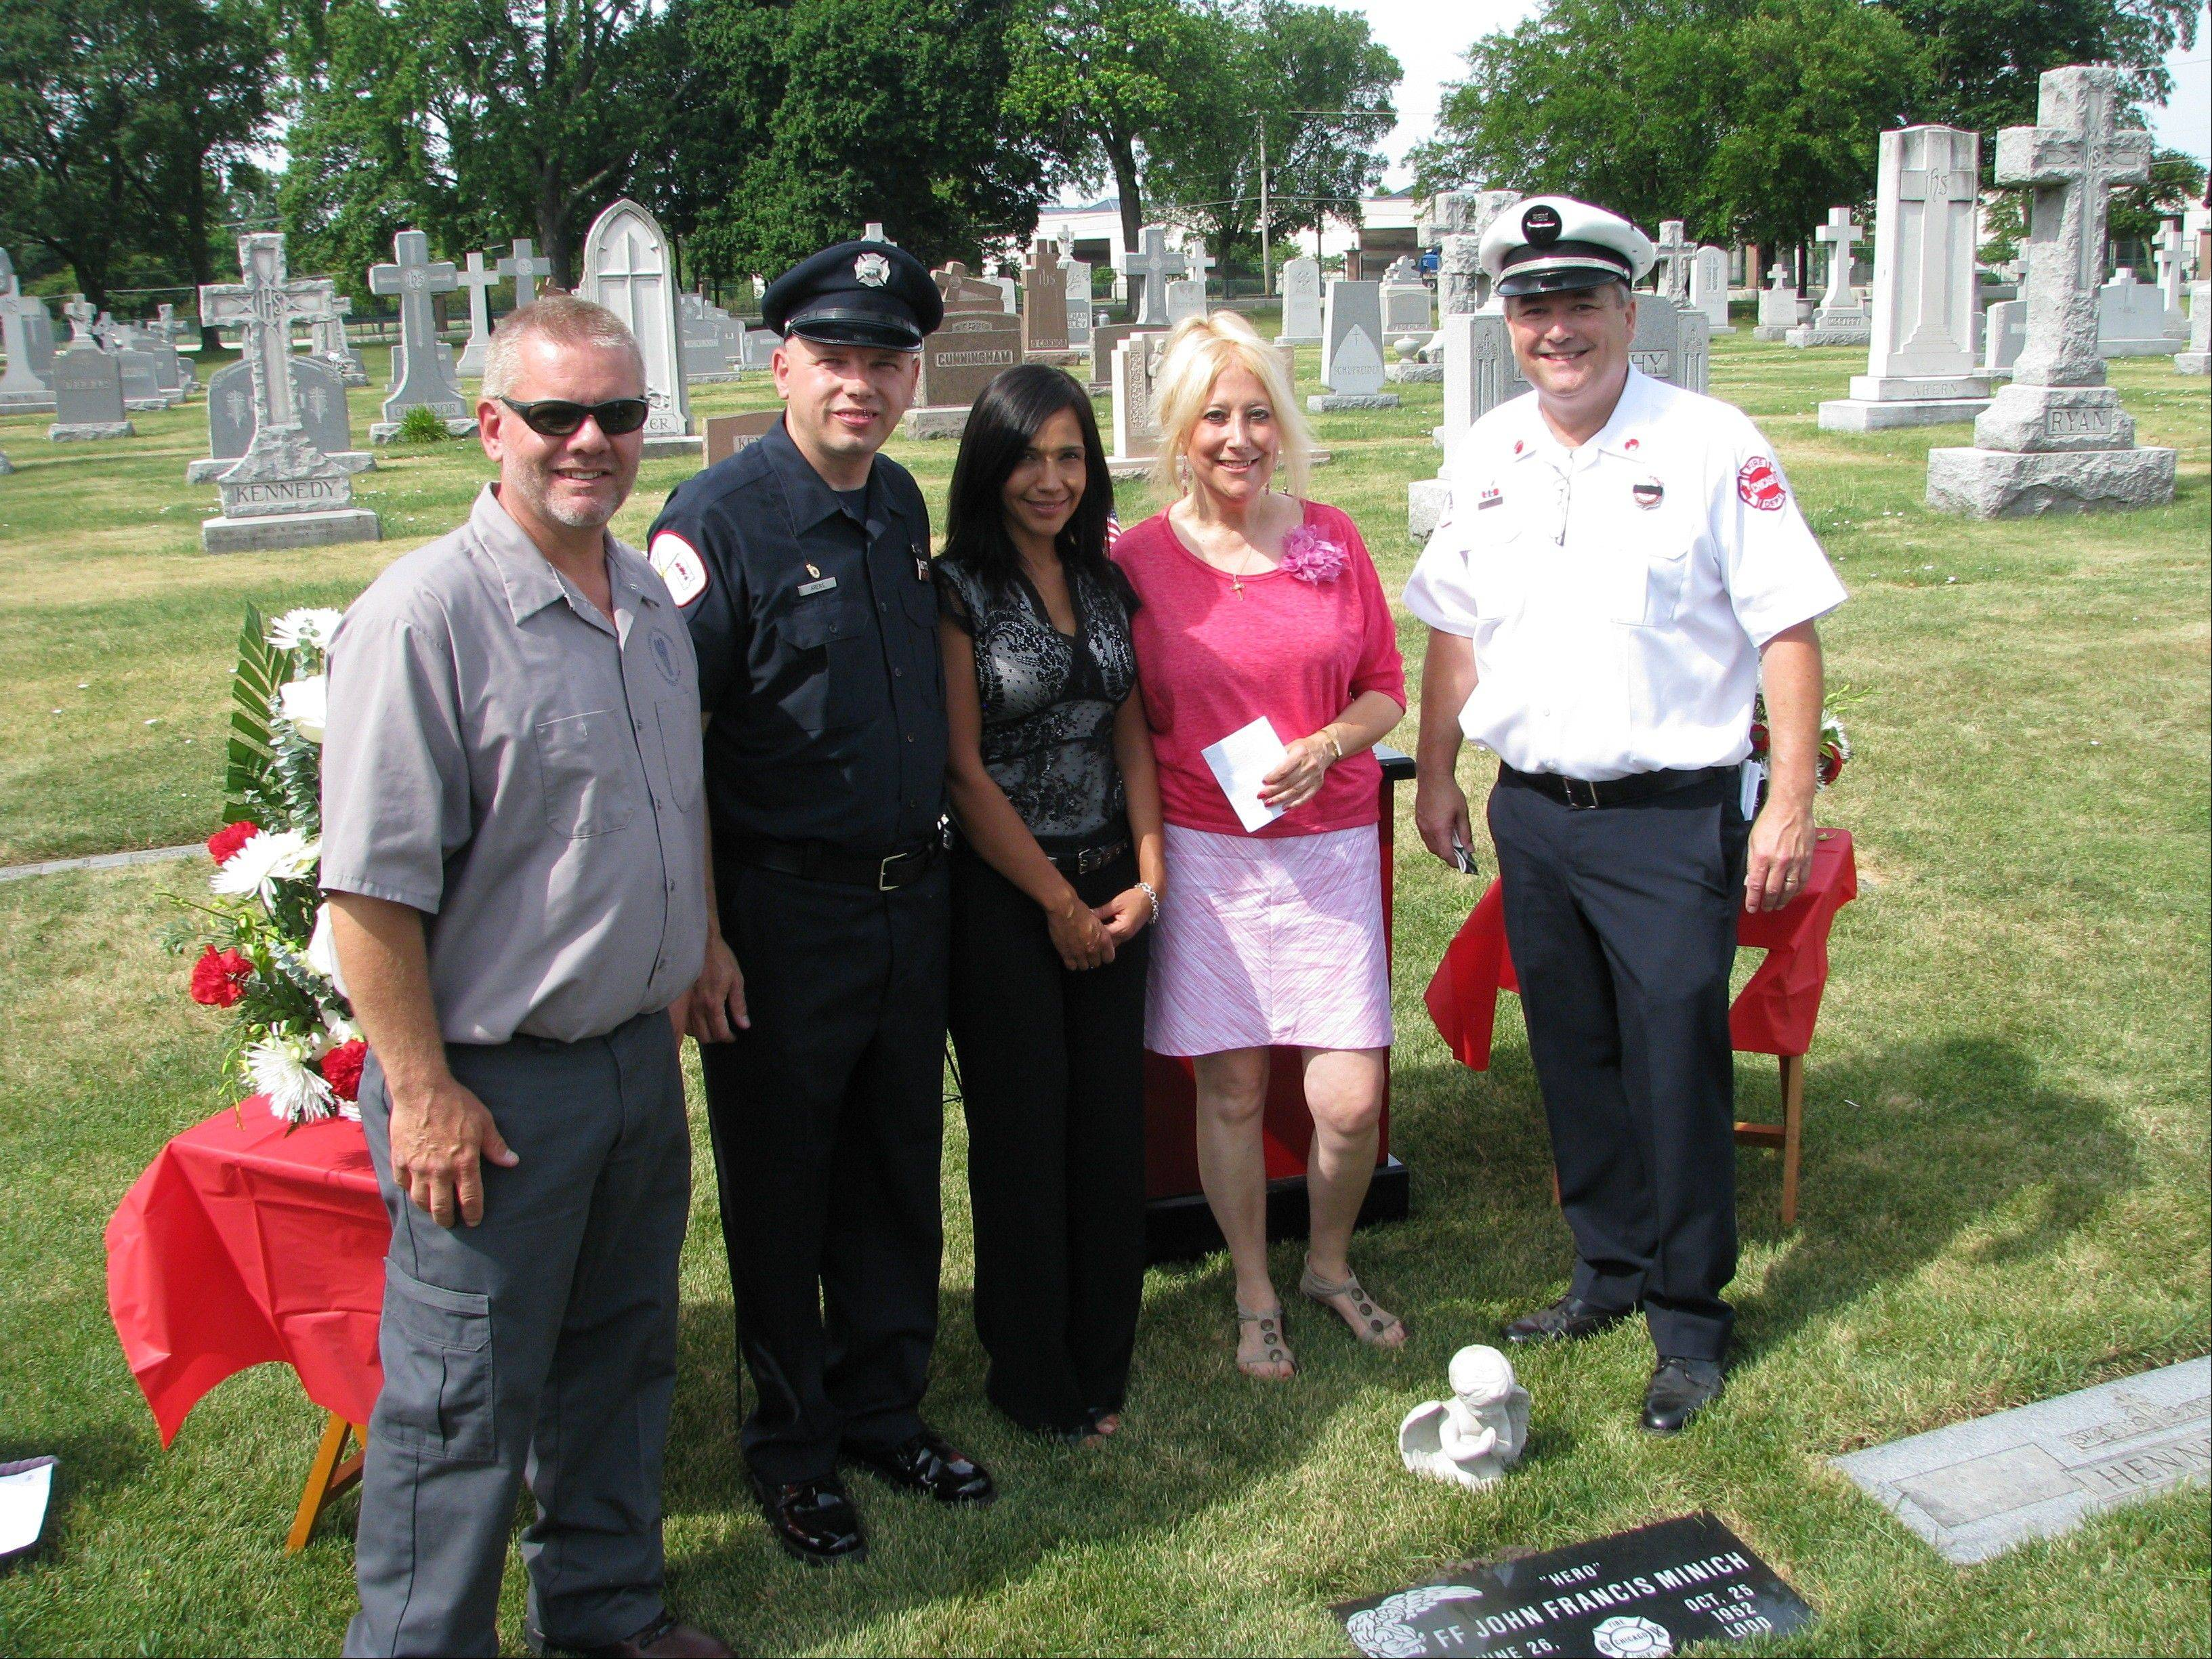 John Stewart, left, an All Saints Cemetery employee; Chicago Firefighter Bob Arens; Tina Diaz, Mount Emblem Cemetery general manager; Debbie McCann, survivor of the 1952 Argyle Hotel fire; and Tom Ryan, CEO Chicago Firefighters Union gather at the new headstone for John Minich.